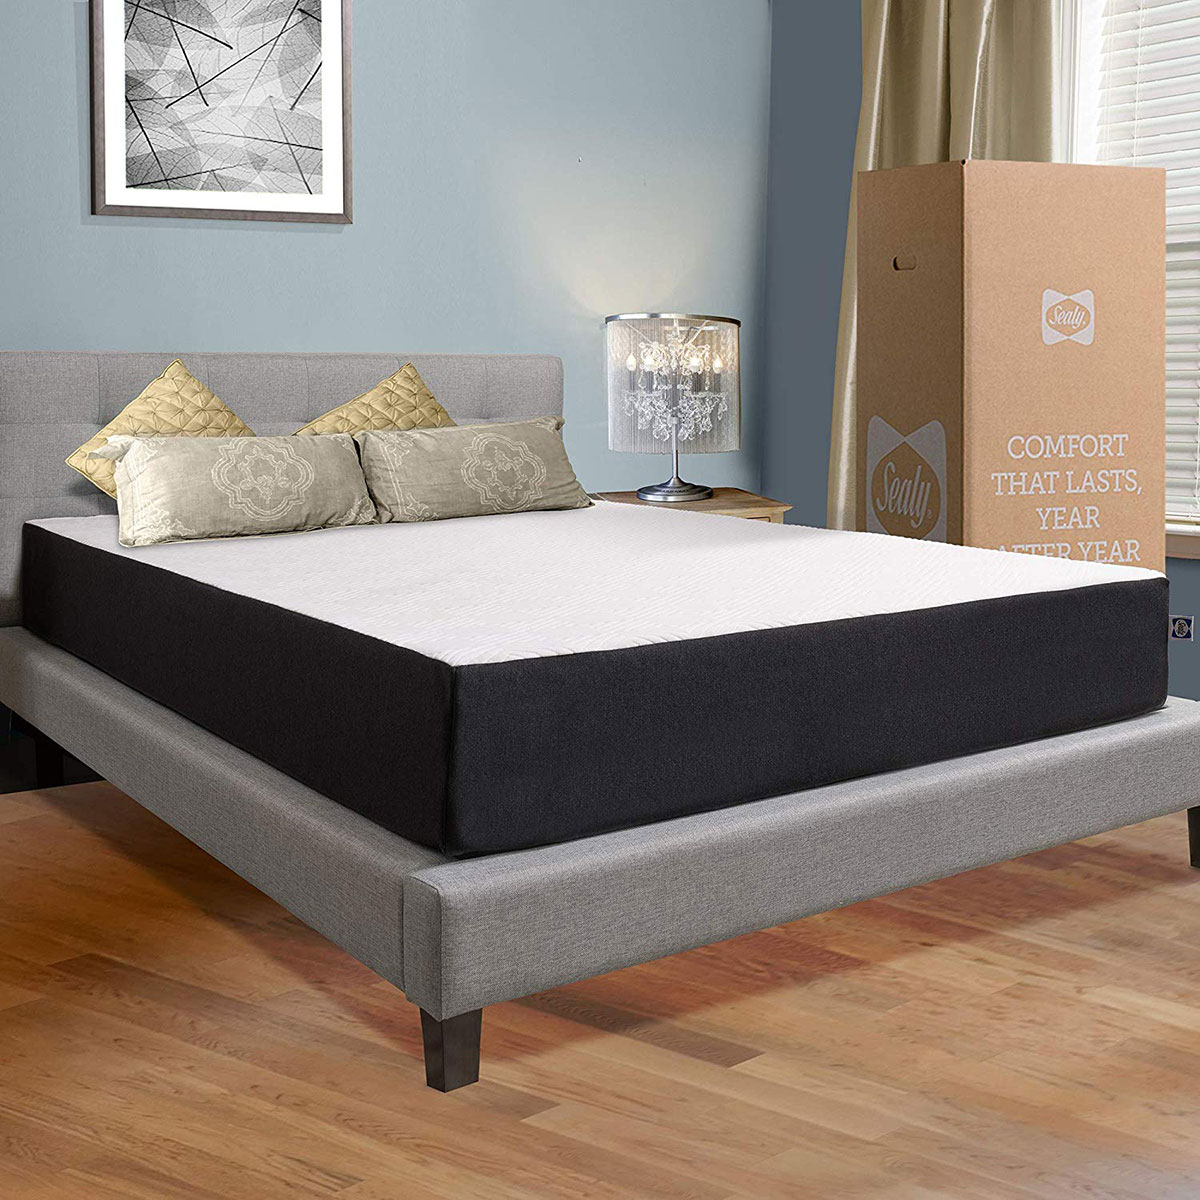 Sealy 10-Inch Memory Foam Hybrid Queen Mattress